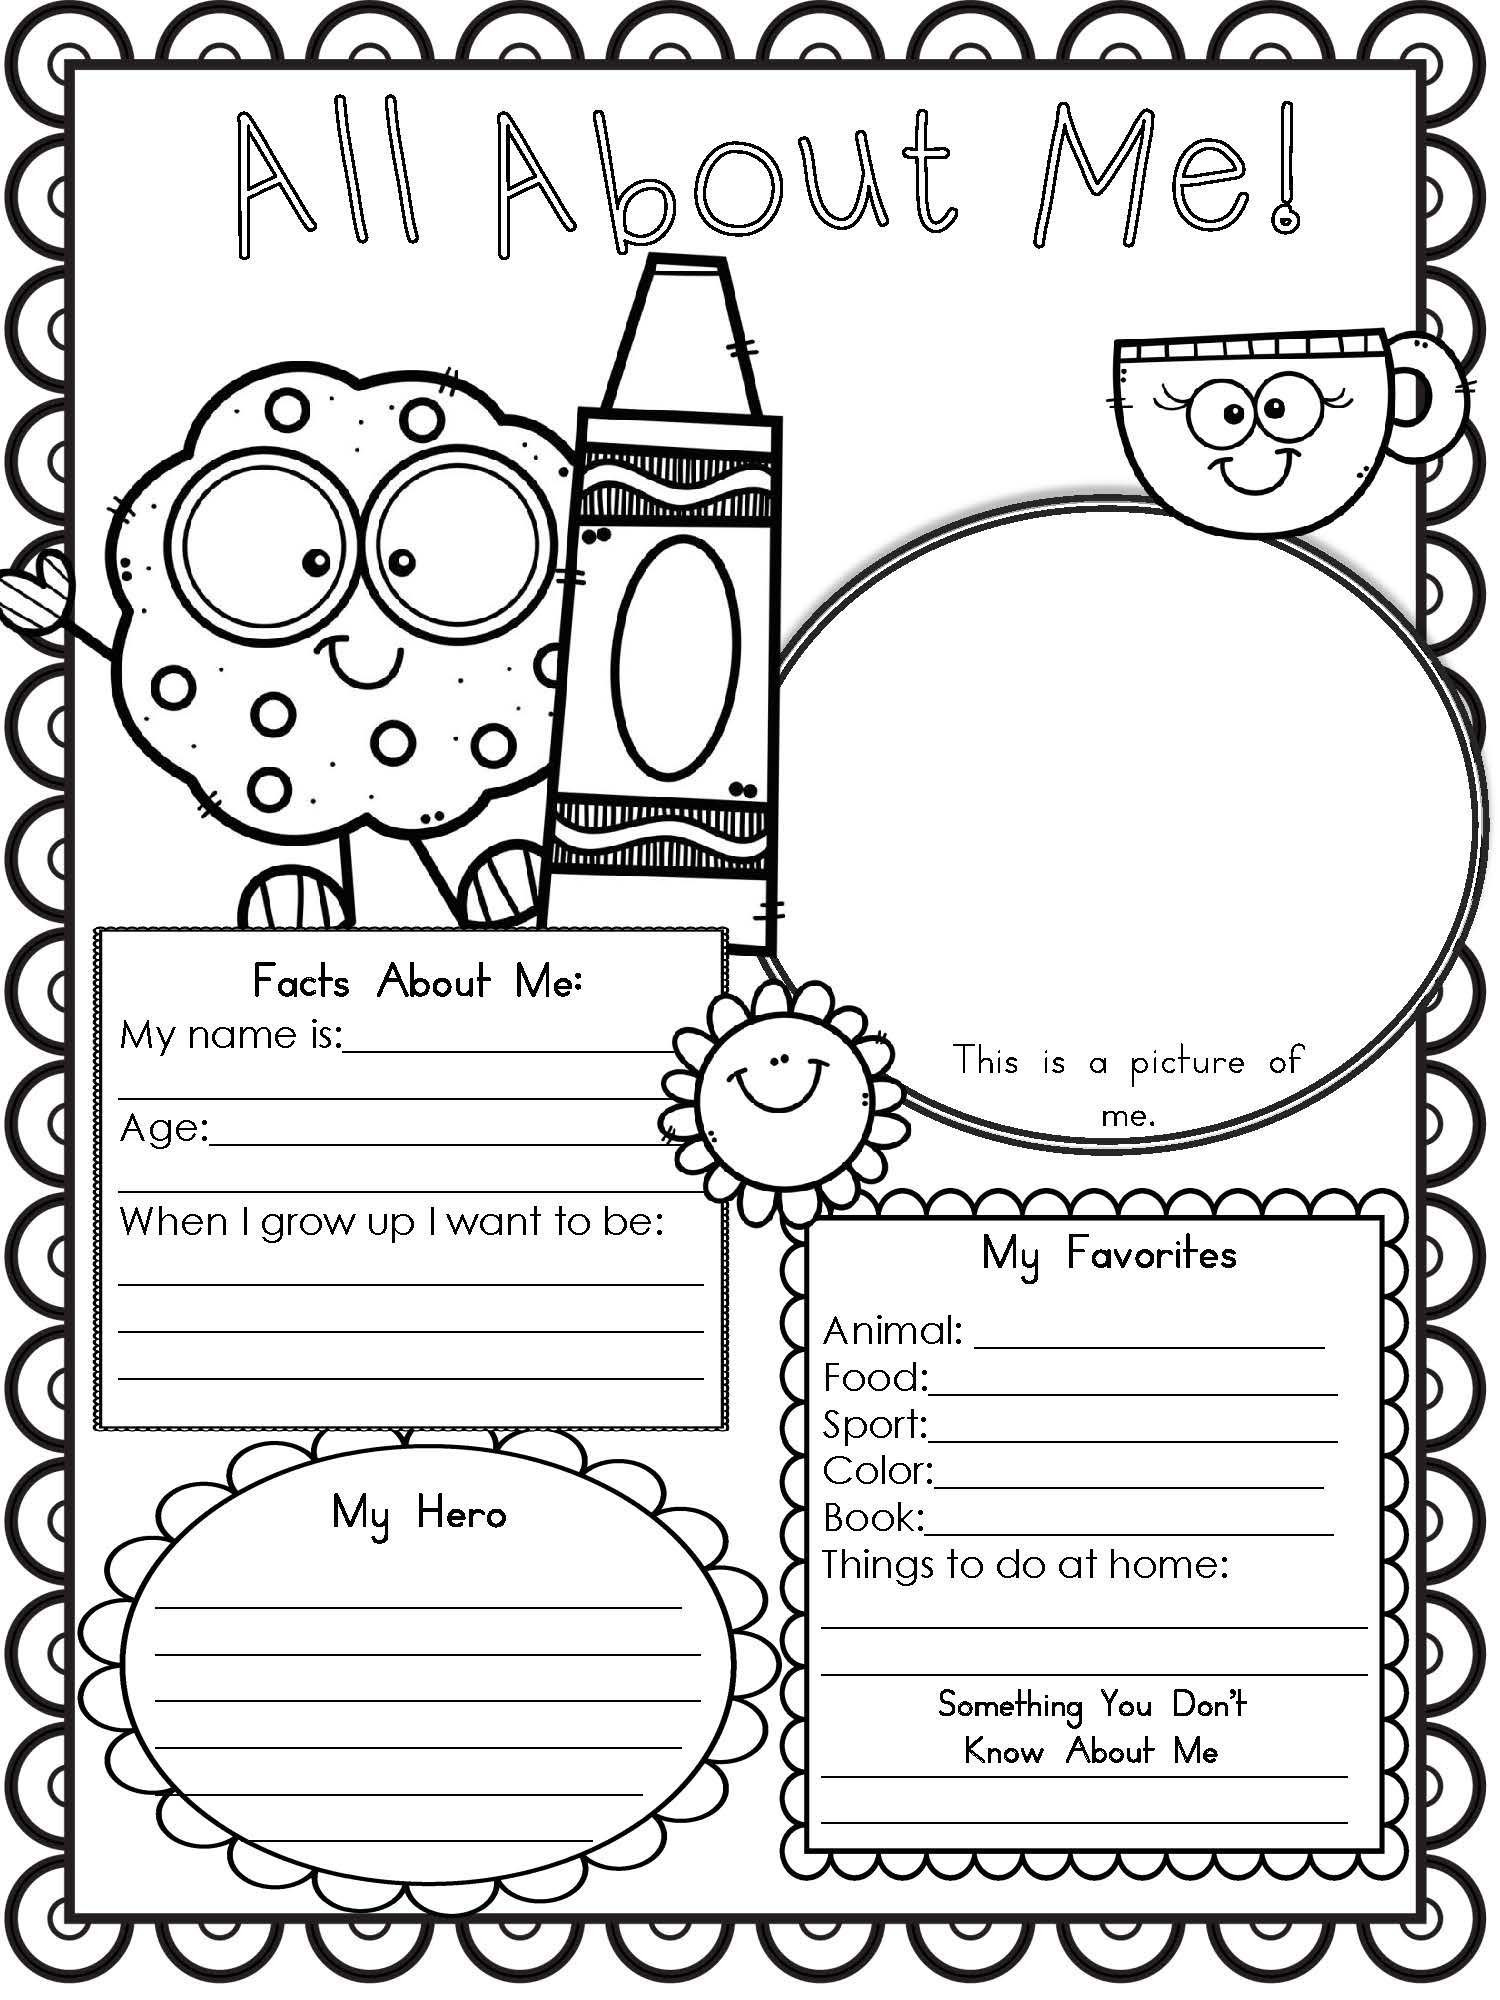 Free Printable Counseling Worksheets Worksheet For